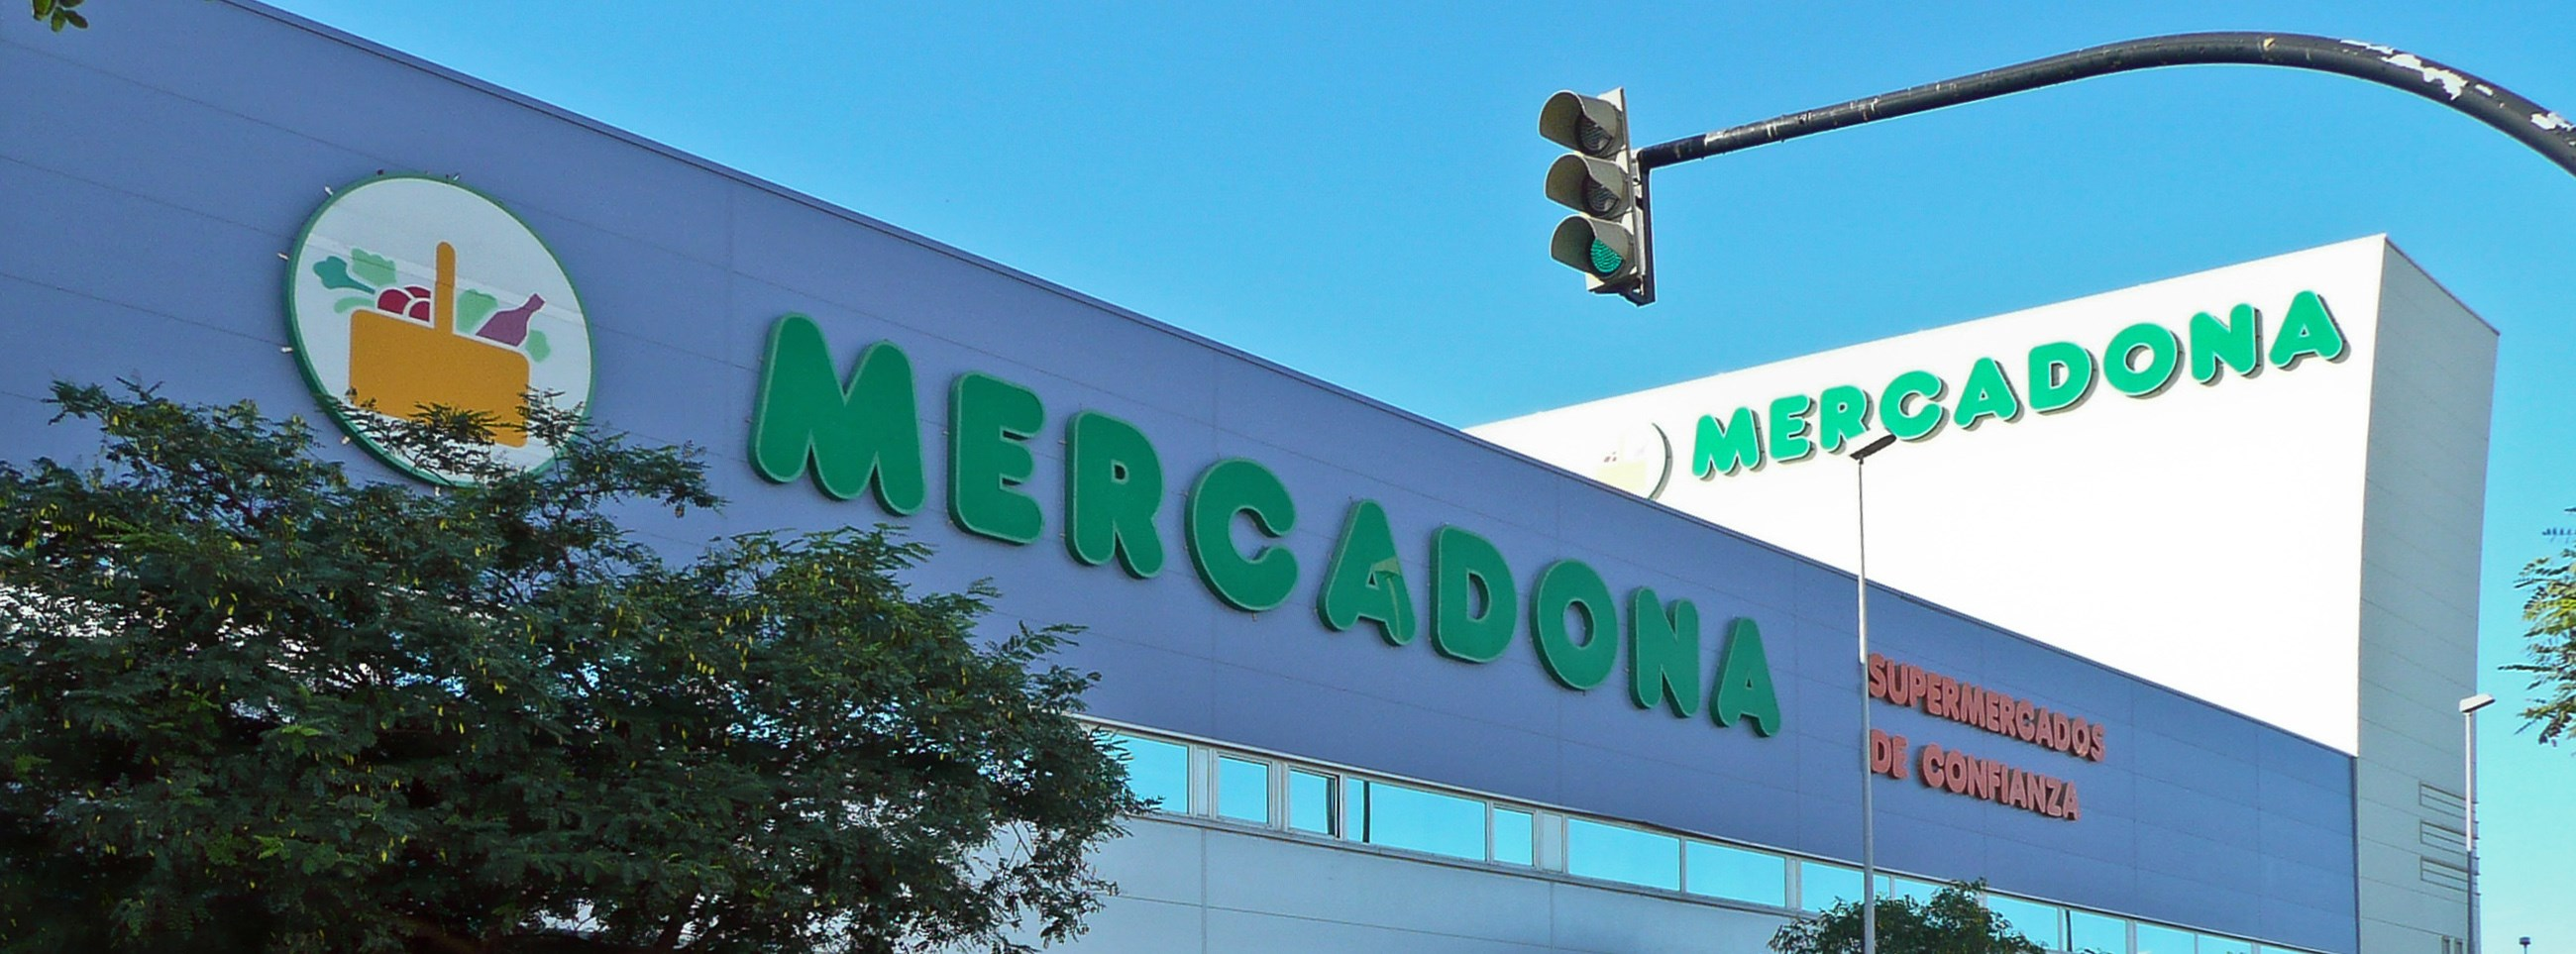 Mercadona store in Cadiz. Photo: Wikimedia Commons